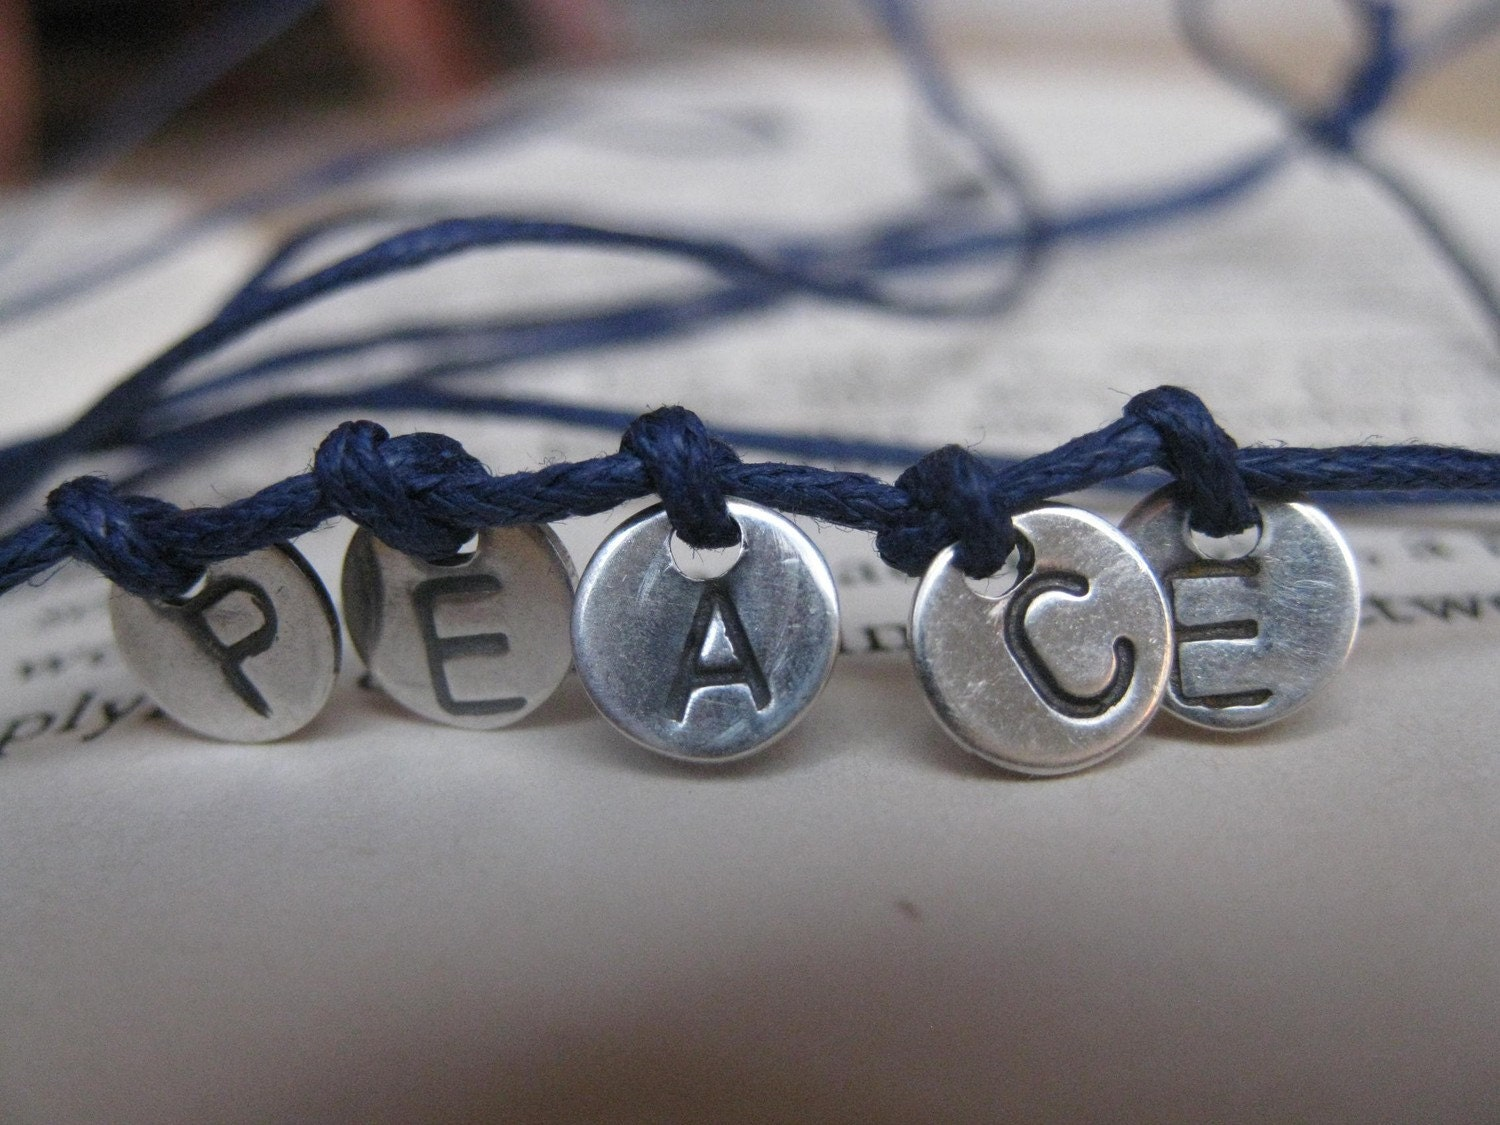 PEACE wrap around bracelet